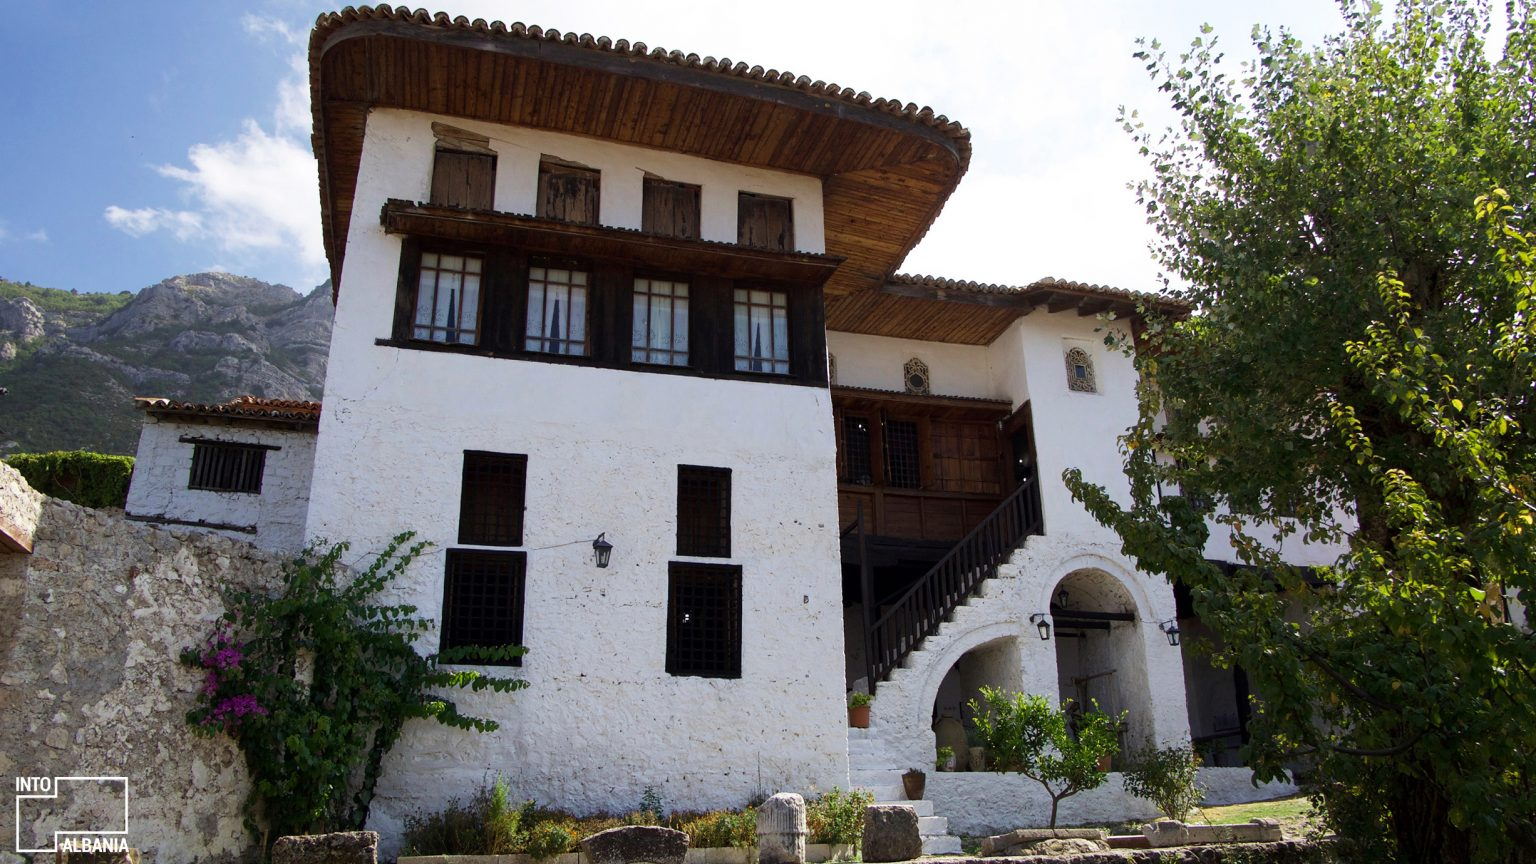 National Ethnographic Museum, Kruja, photo by IntoAlbania